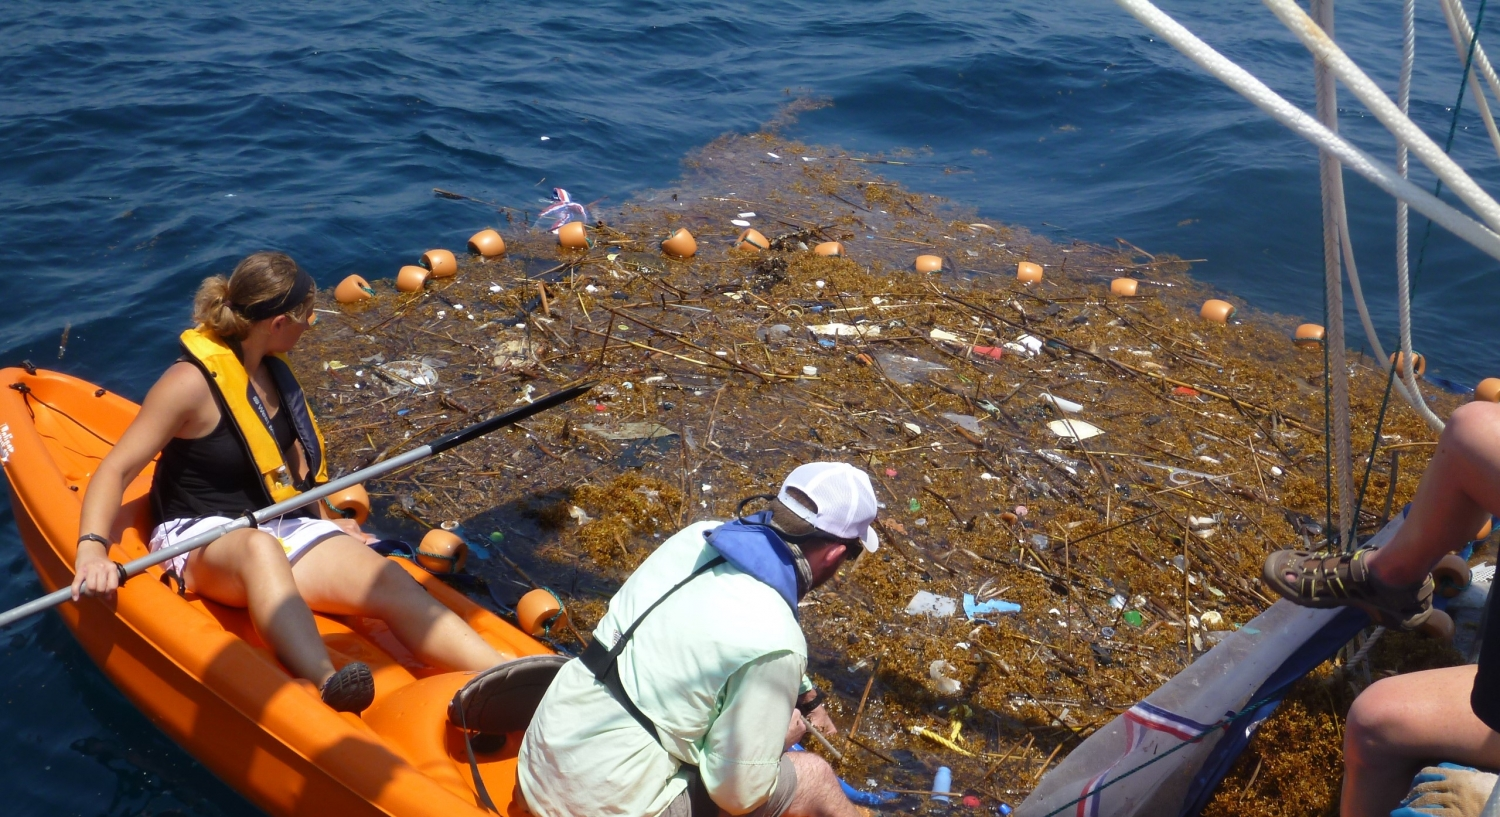 marine debris Marine debris comes in many forms, from a cigarette butt tossed on the beach to a 4,000-pound tangle of derelict fishing nets caught on a coral reef.